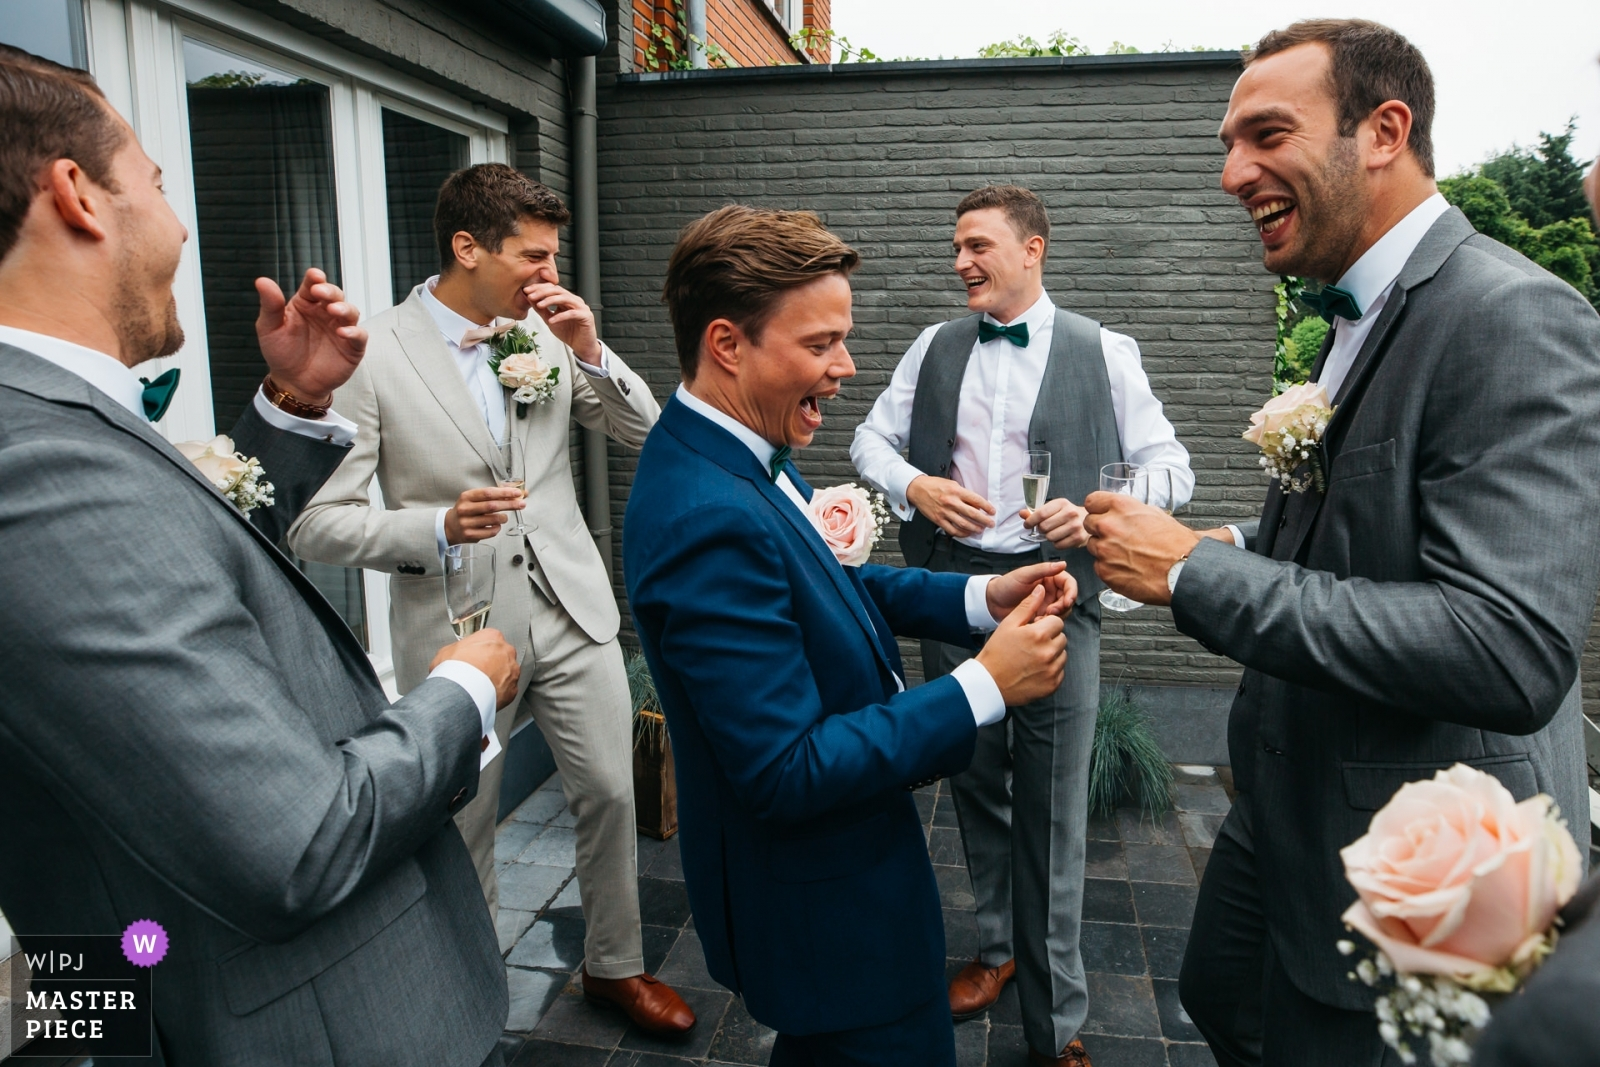 groomsmen are laughing with the sweatiness of one's groomsmen's shirt, early in the morning - Antwerpen, Flanders Wedding Photography -  | bride and groom's house